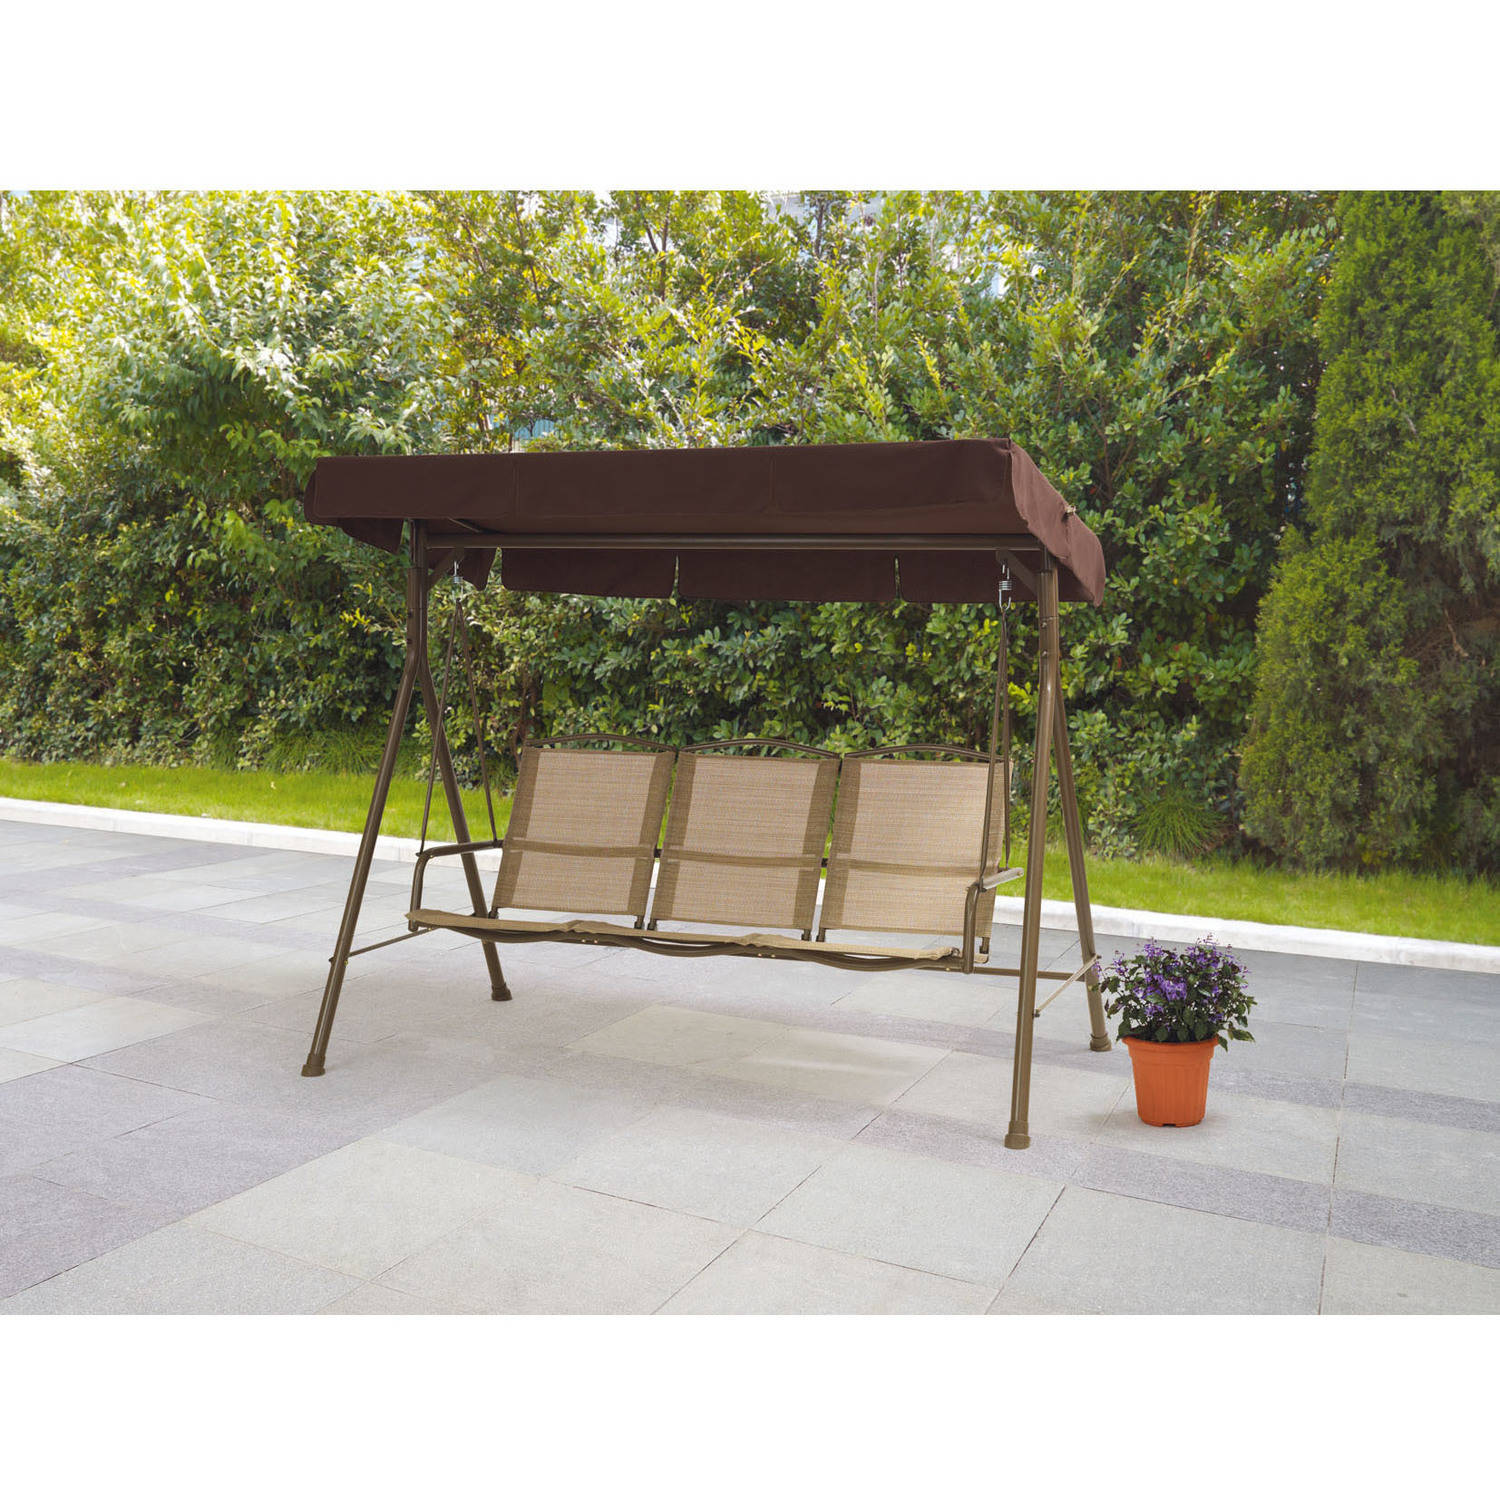 Mainstays Sand Dune 3-Person Outdoor Sling Canopy Porch Swing with Canopy, Dune by Keysheen Industry (Shanghai) Co., Ltd.